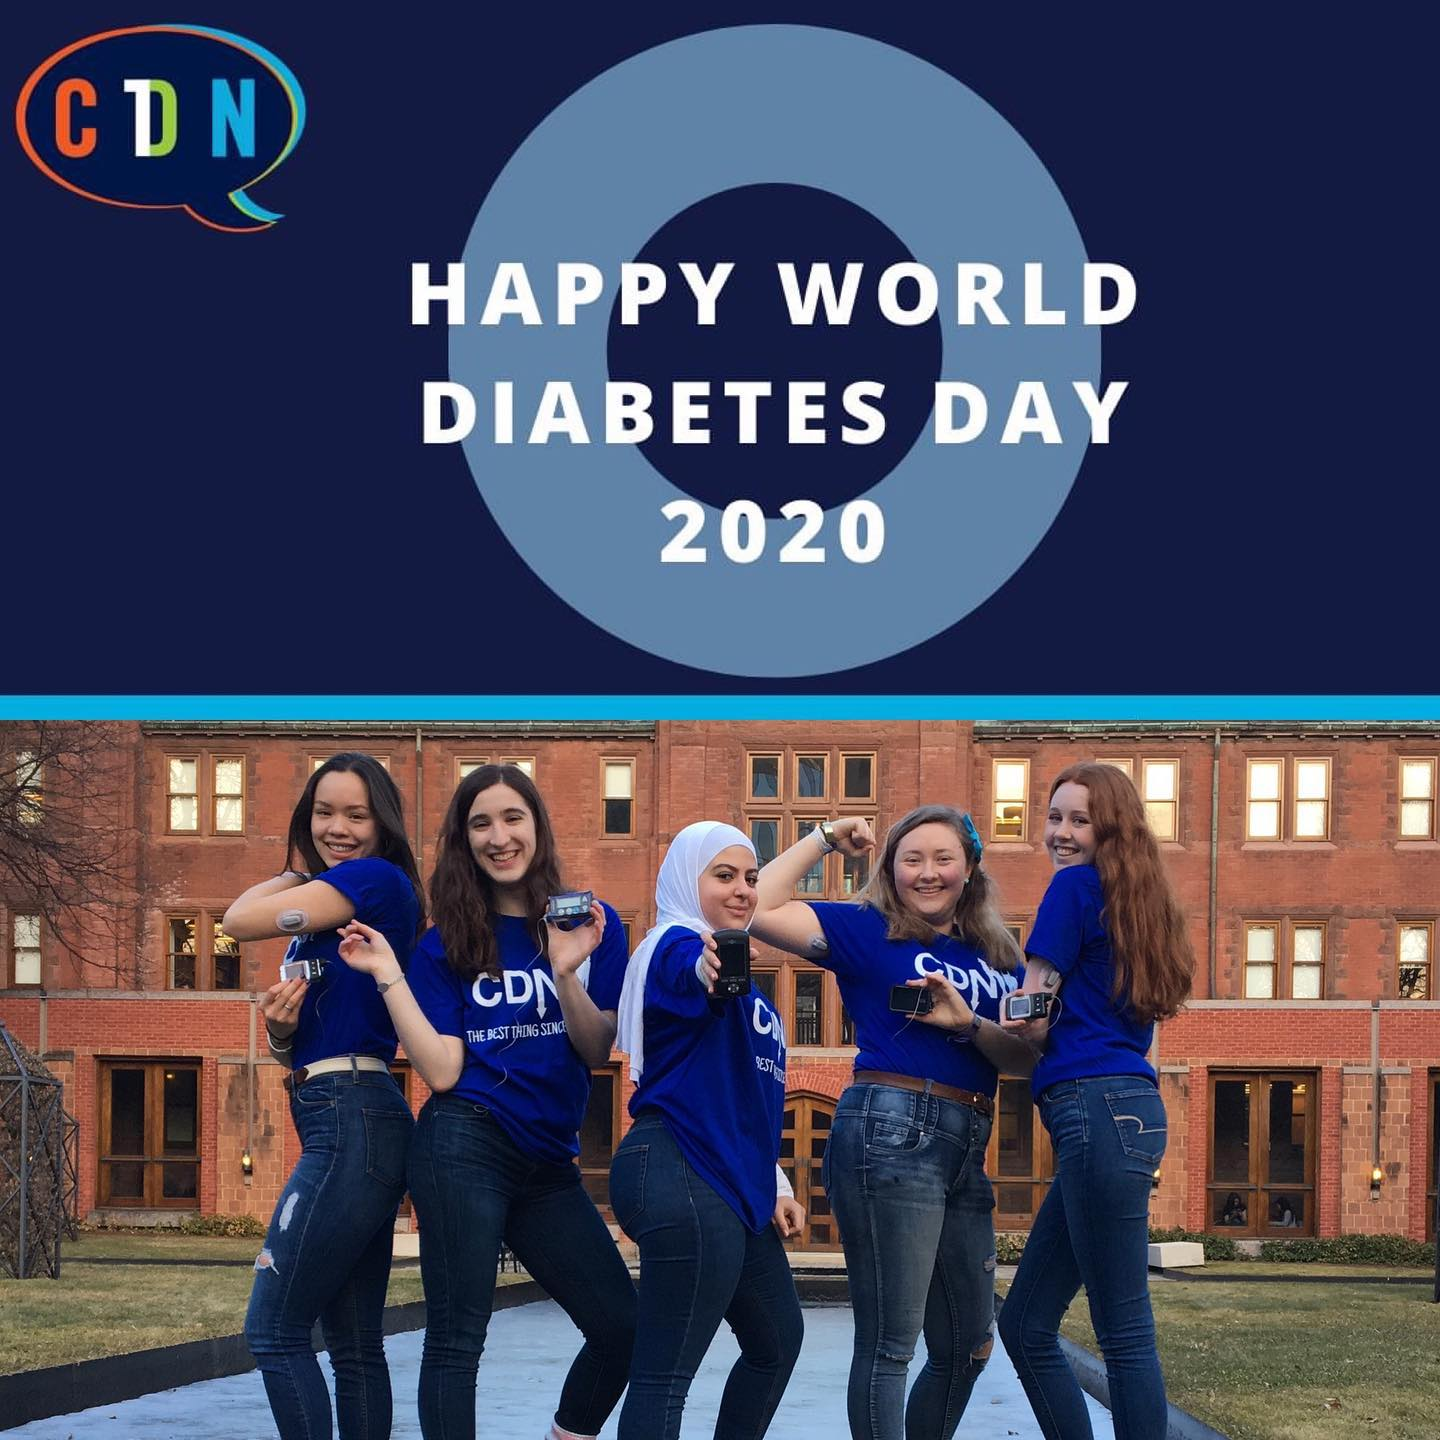 "Top half of the photo says ""Happy World Diabetes Day"" in text on top of a blue circle. Bottom of the photo shows 5 young women in CDN T-shirts, posing with their insulin pumps."